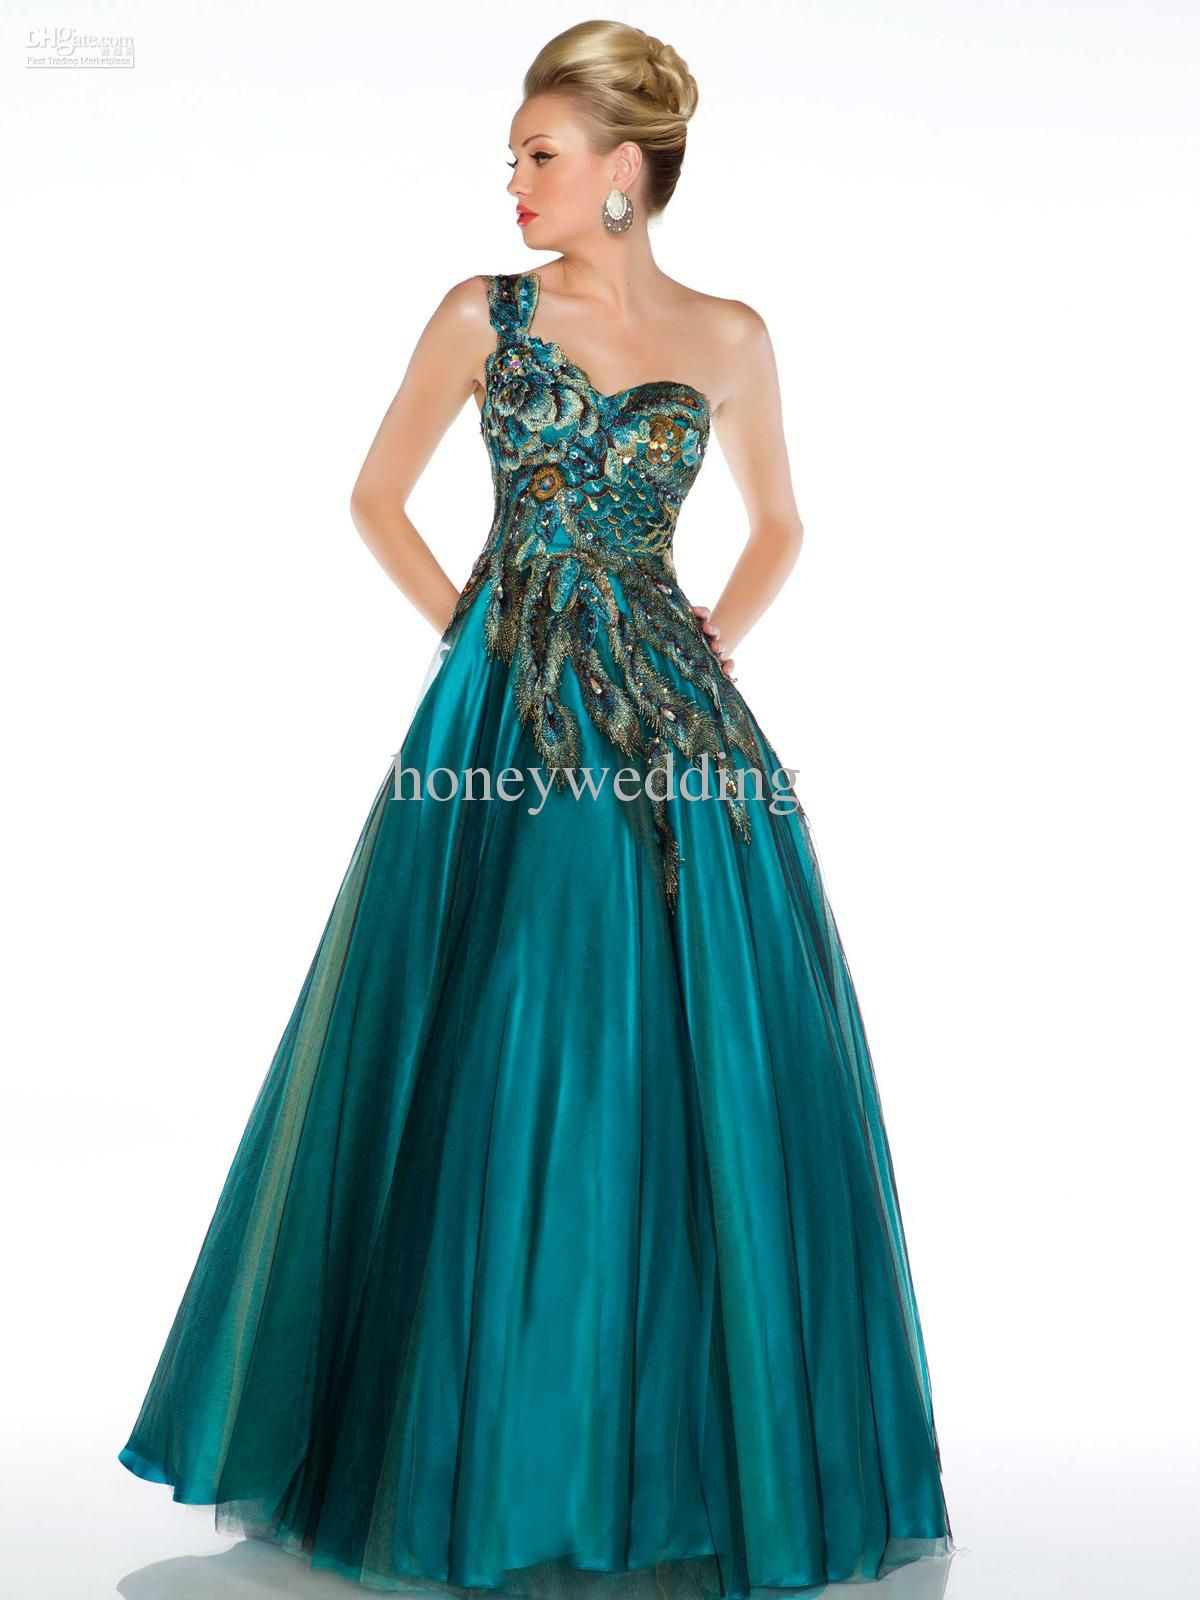 Teal Peacock Bridesmaid Dresses One shoulder prom dresses 2015 ...